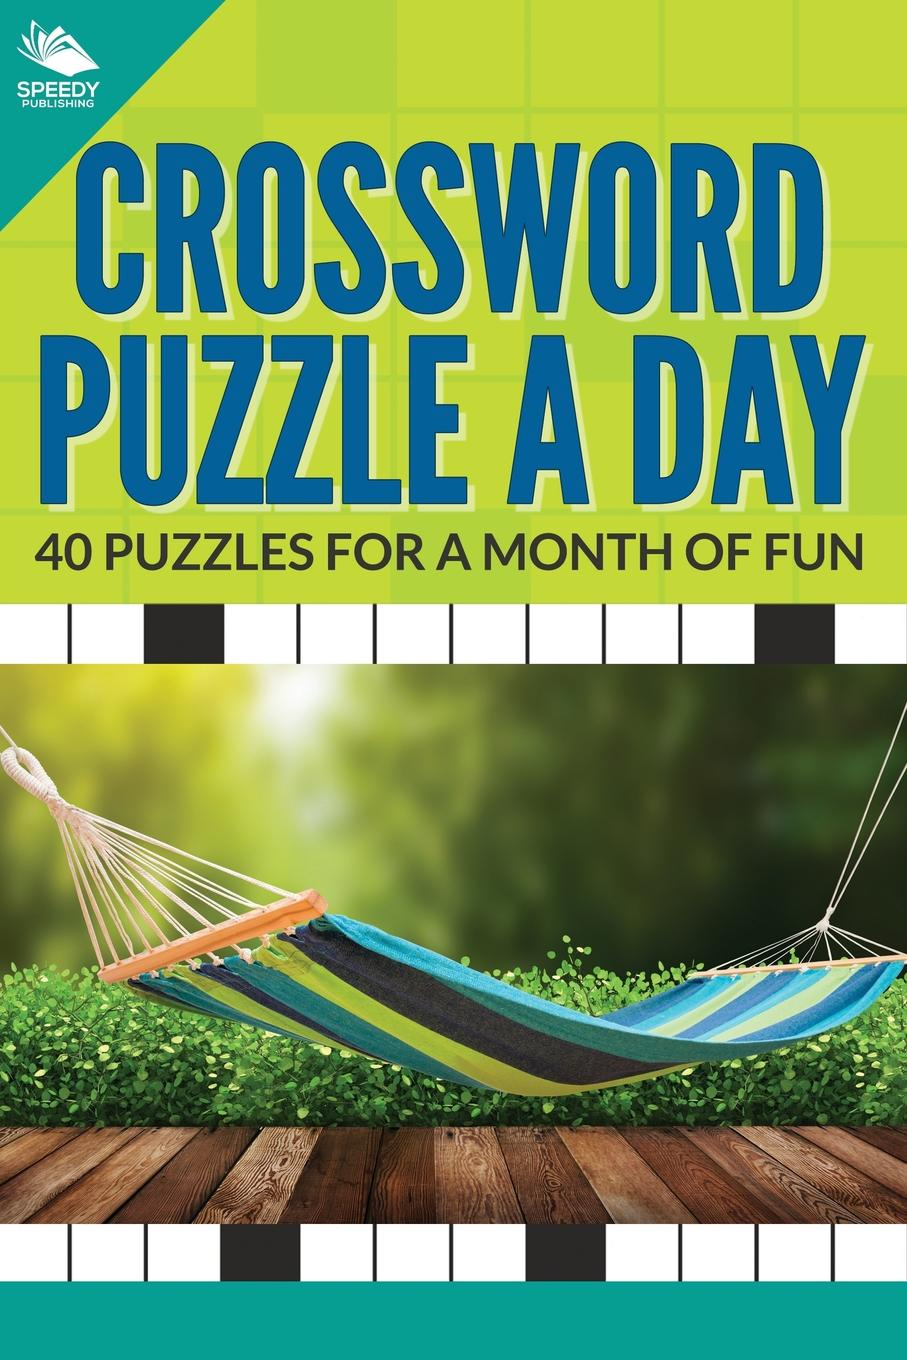 Speedy Publishing LLC Crossword Puzzle a Day. 40 Puzzles For A Month of Fun mathew hartley one month to happiness